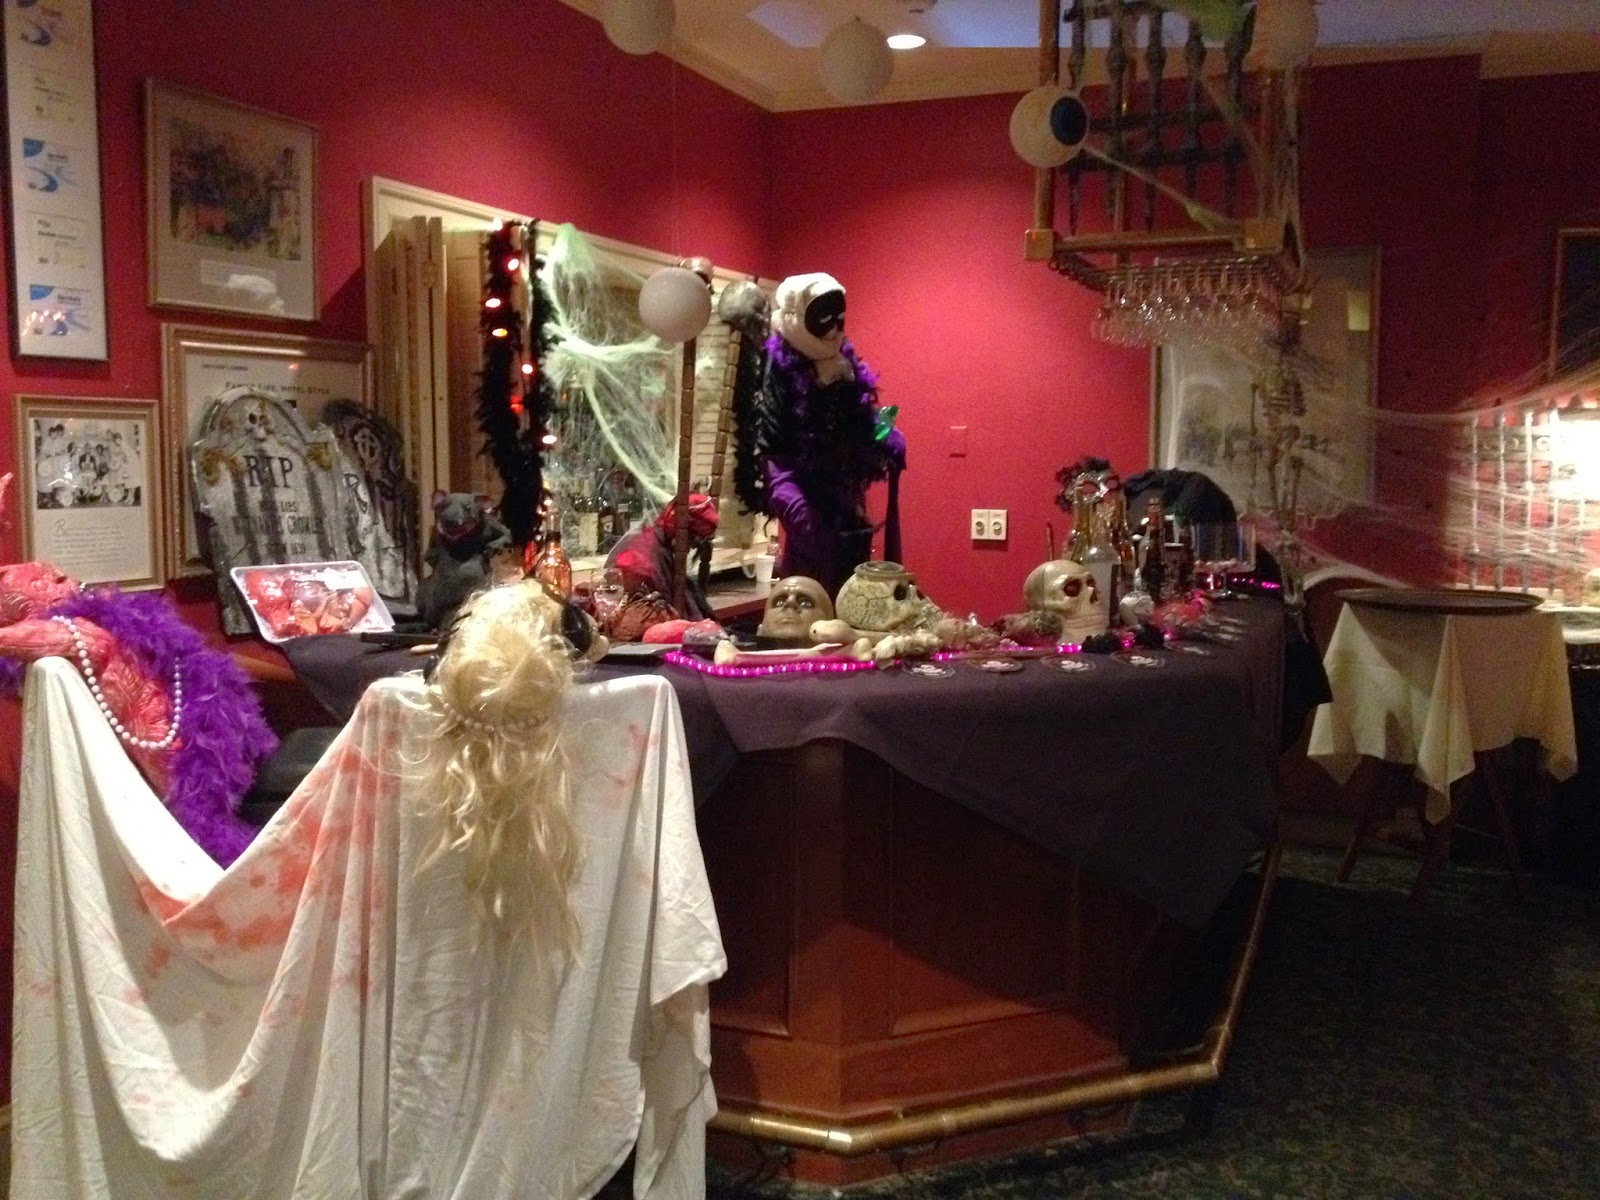 Hawthorne Hotel: Best Decorated Room at Our Annual Halloween Contest